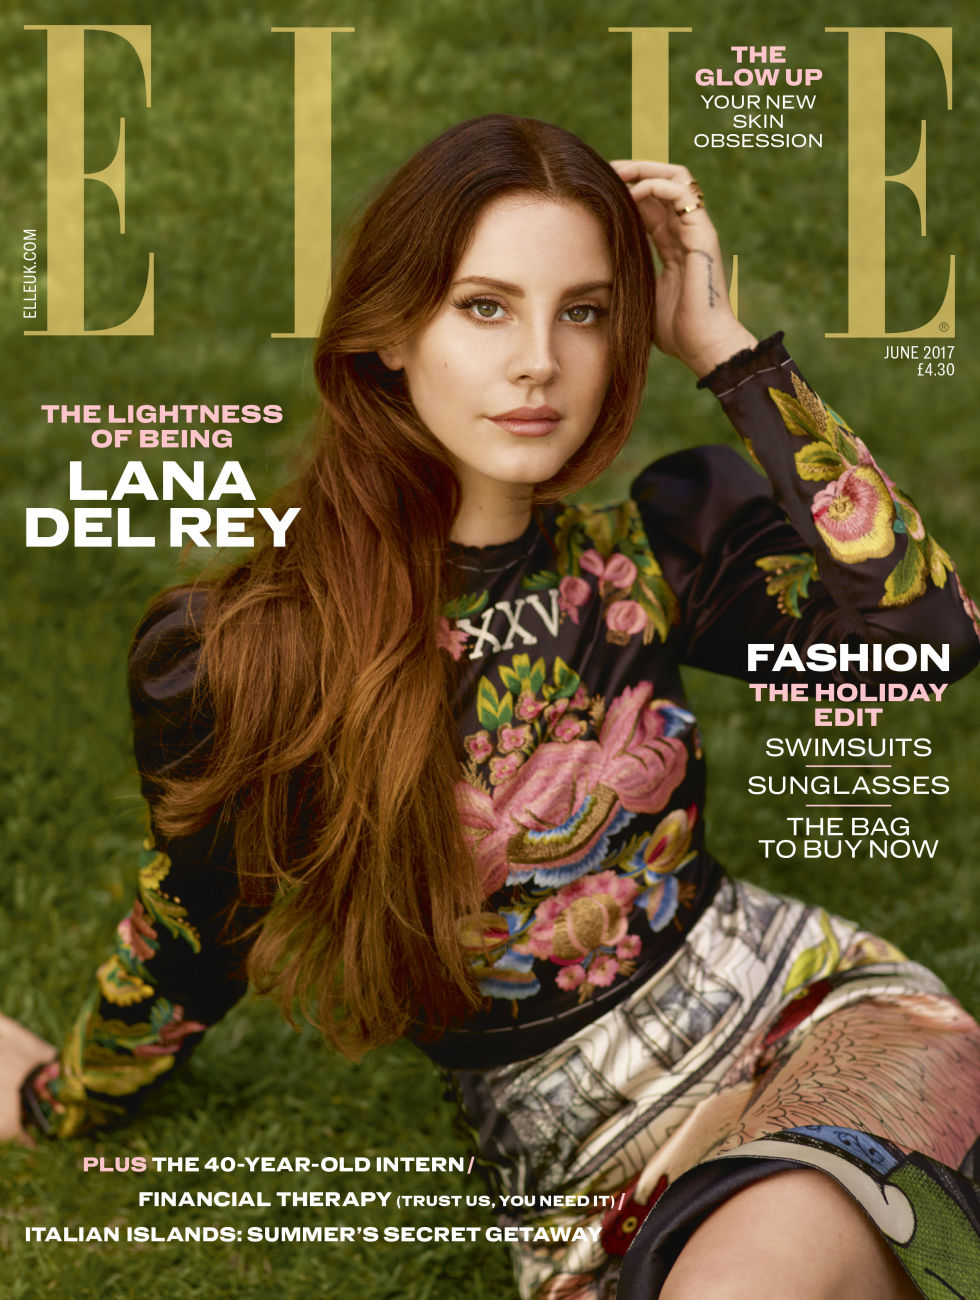 Forum on this topic: Lana Del Rey: I Have Slept With , lana-del-rey-i-have-slept-with/